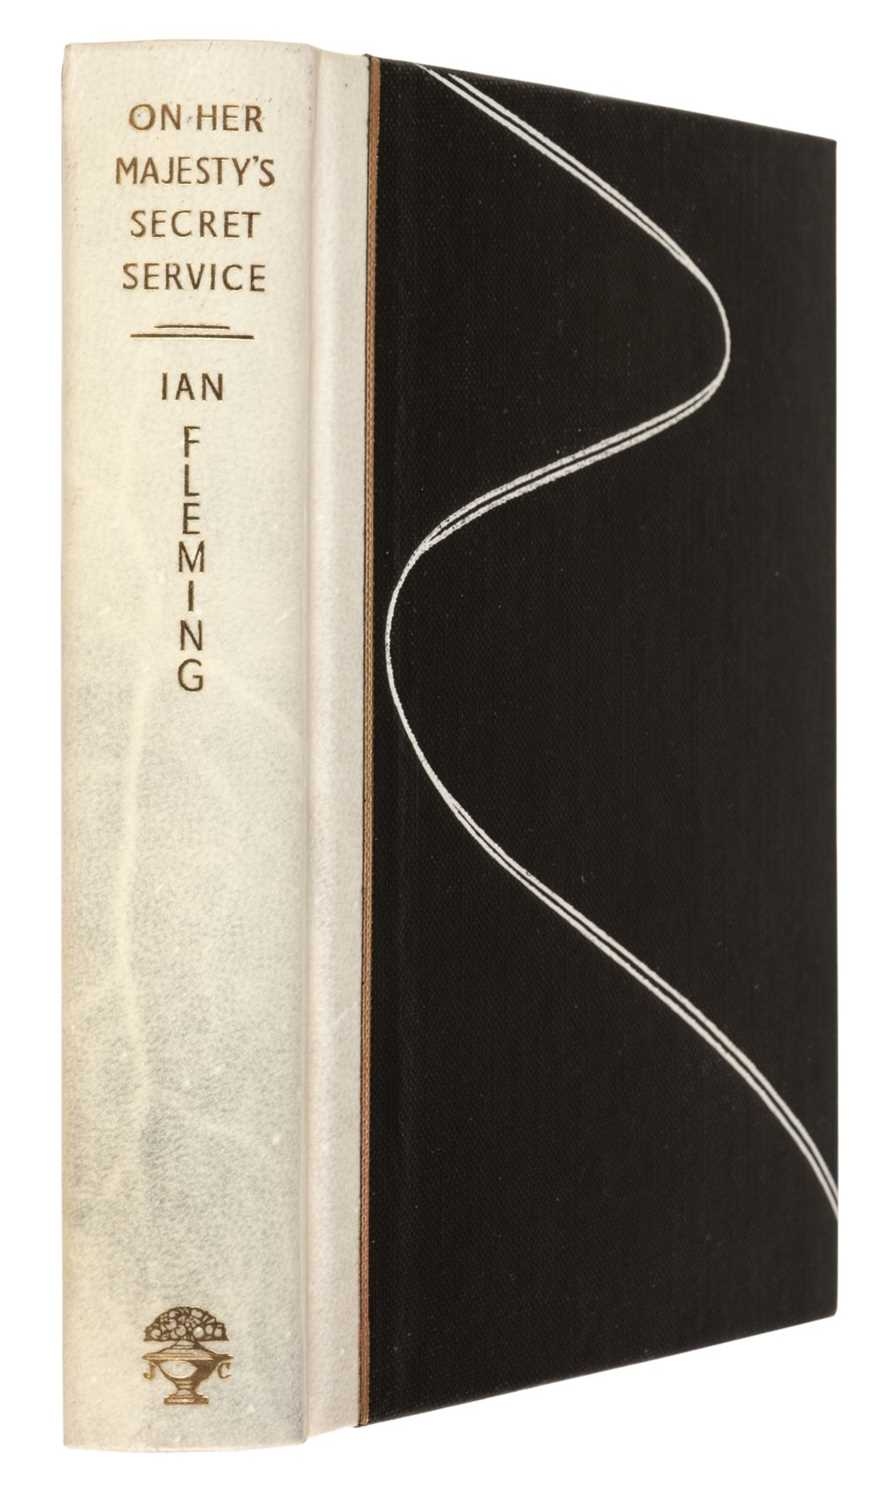 Lot 824 - Fleming (Ian). On Her Majesty's Secret Service, 1s edition, limited issue, 1963